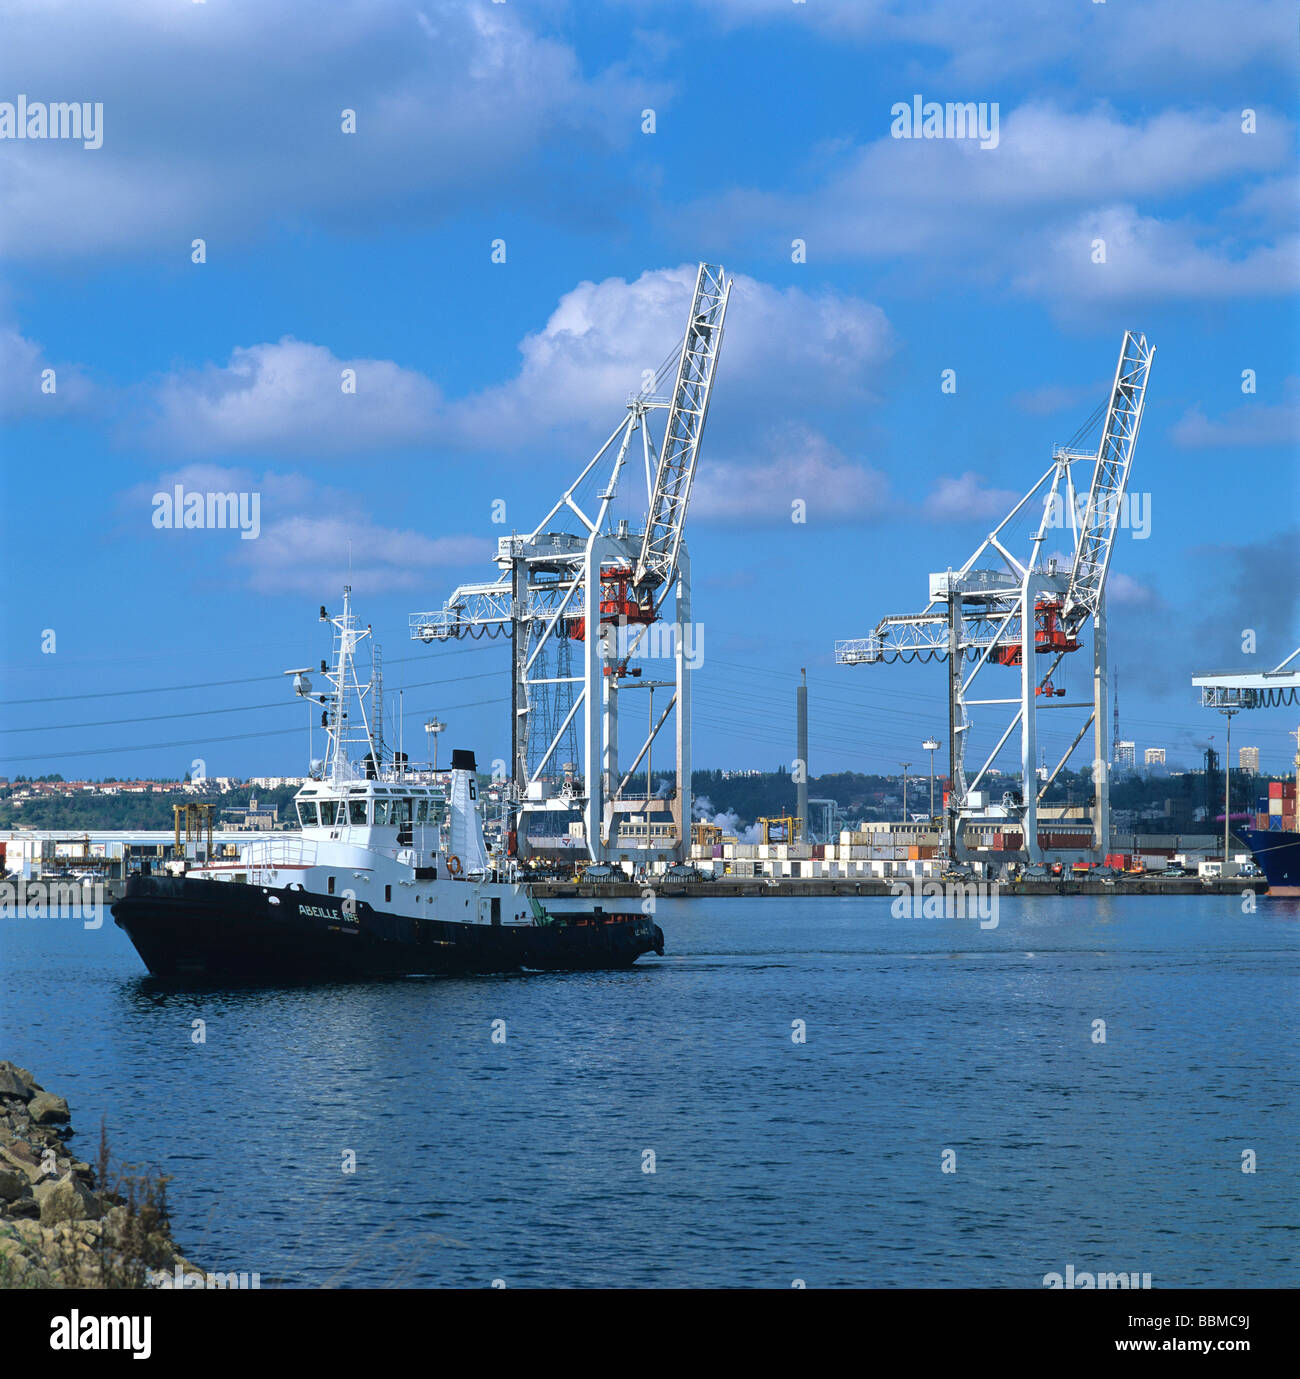 Port of Le Havre, Seine-Maritime, Normandy, France - Stock Image